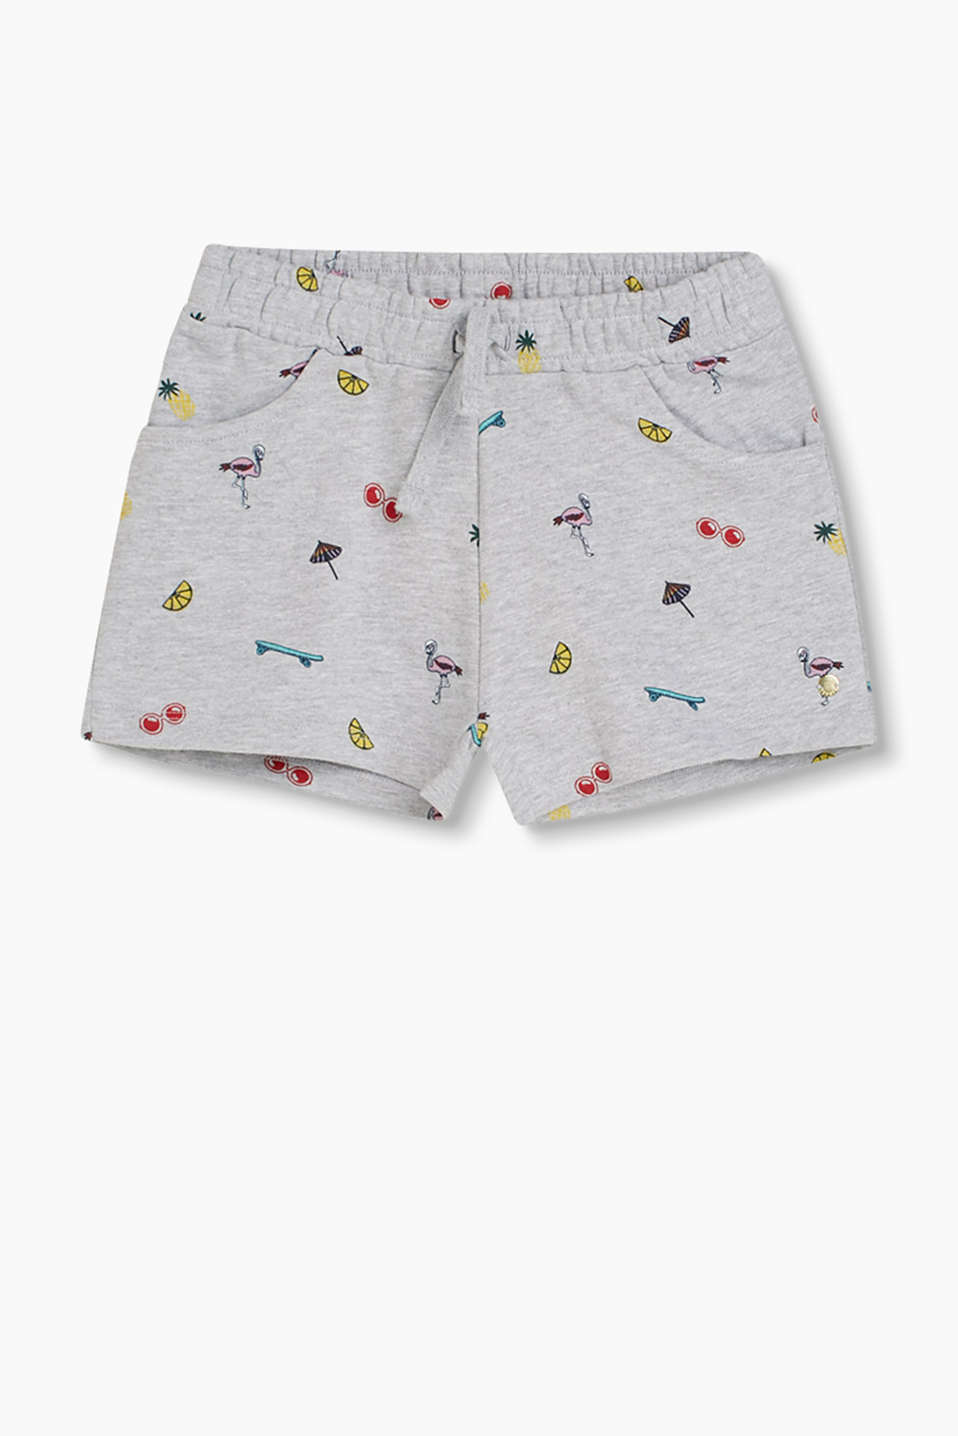 Sweatshirt shorts in a melange cotton blend with summery printed motifs